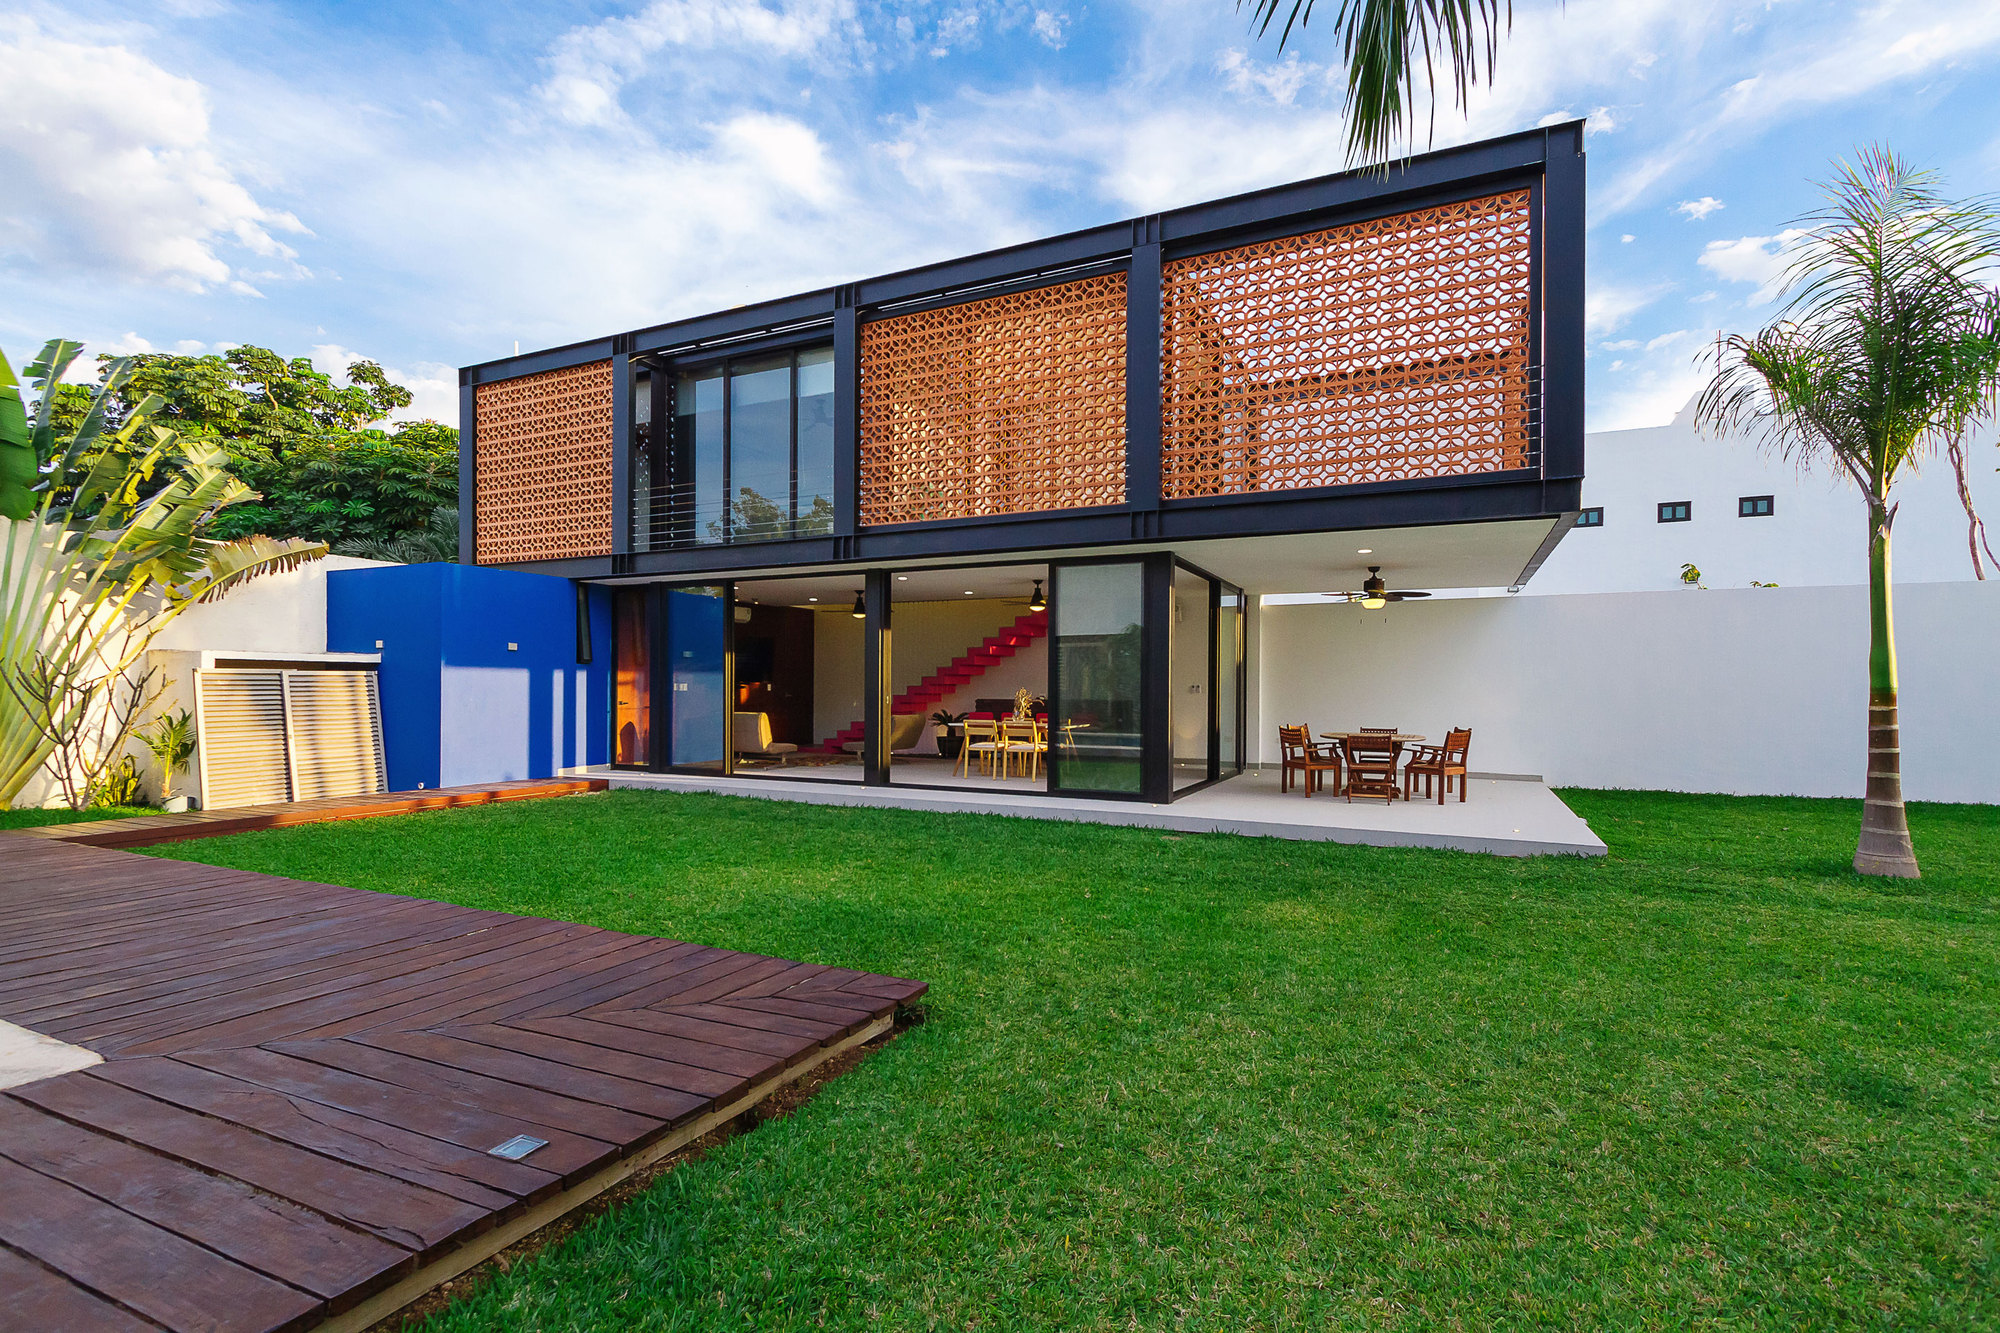 Loft g punto arquitect nico archdaily brasil for Consola de tipo industrial